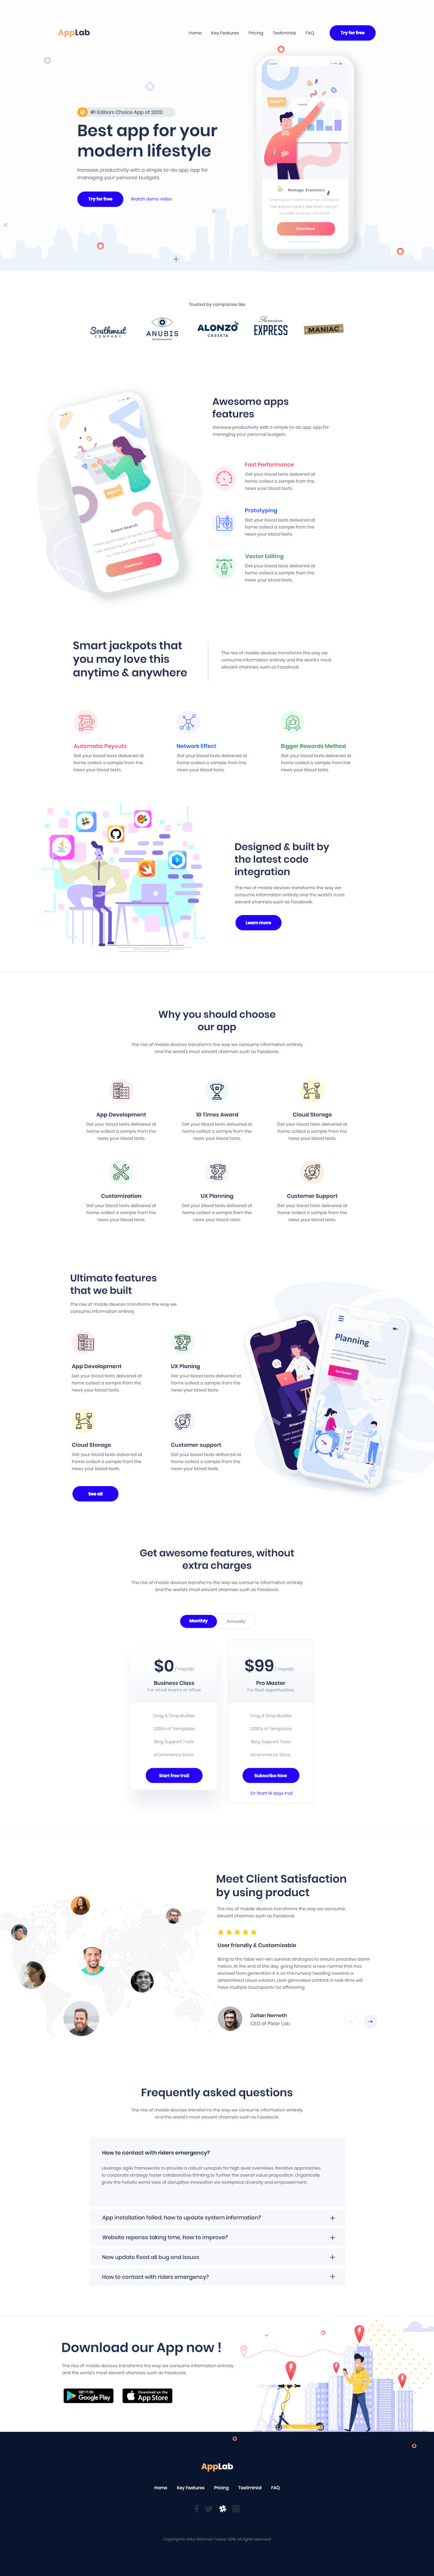 Free App Lab Landing Page Template Preview